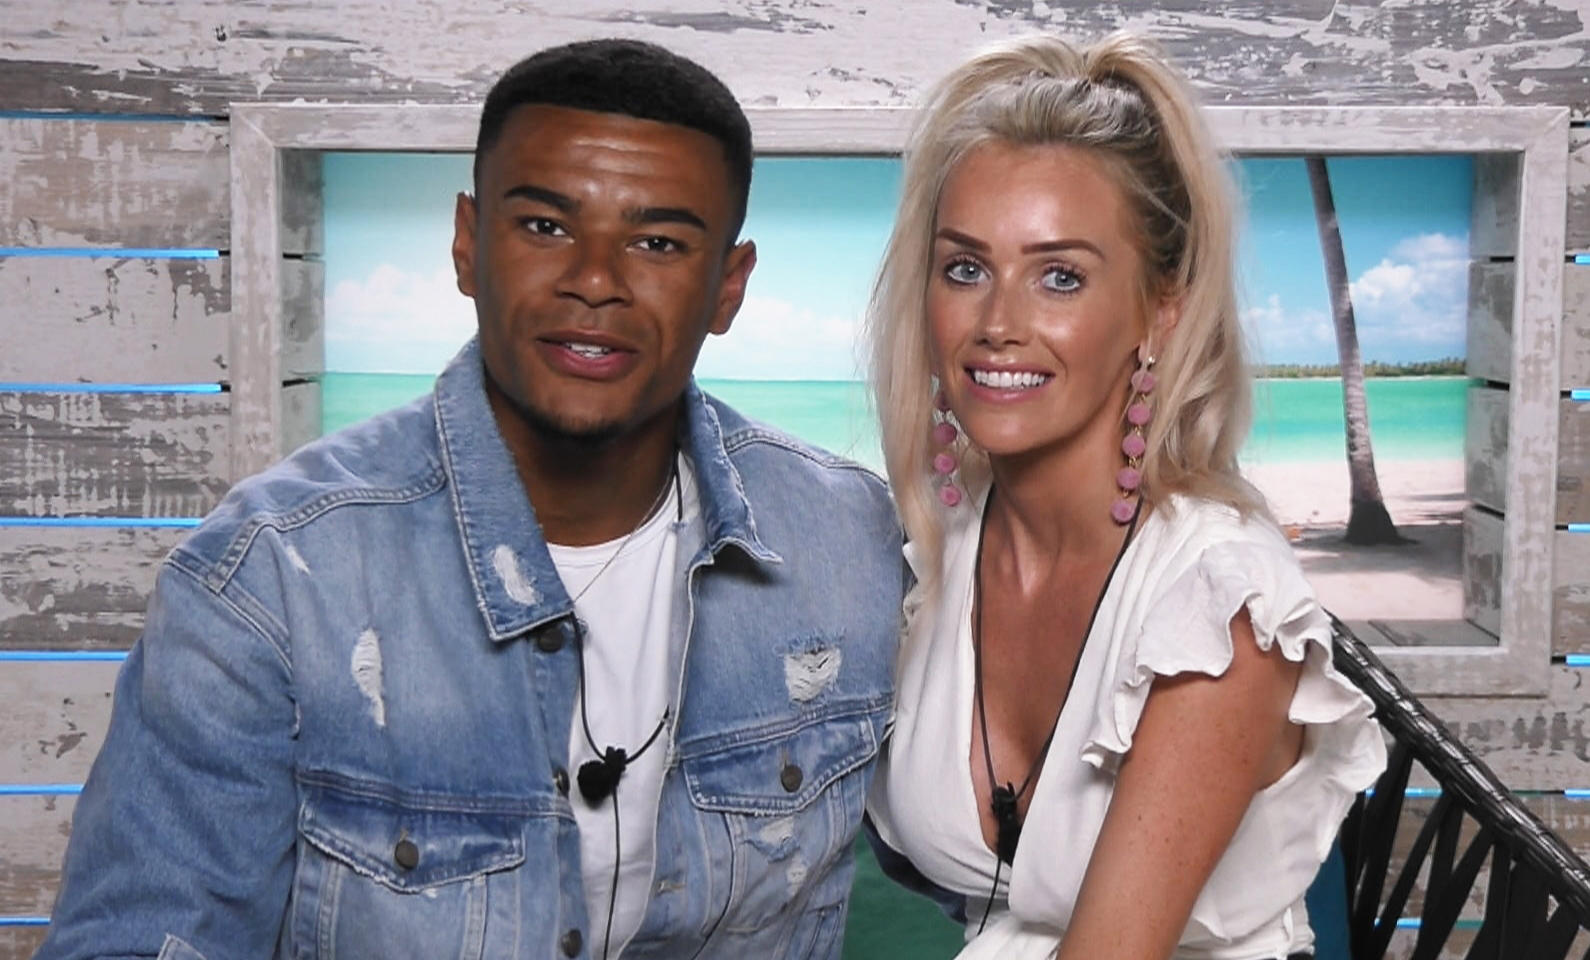 Wes Nelson and Laura Anderson on Love Island 2018 episode 10